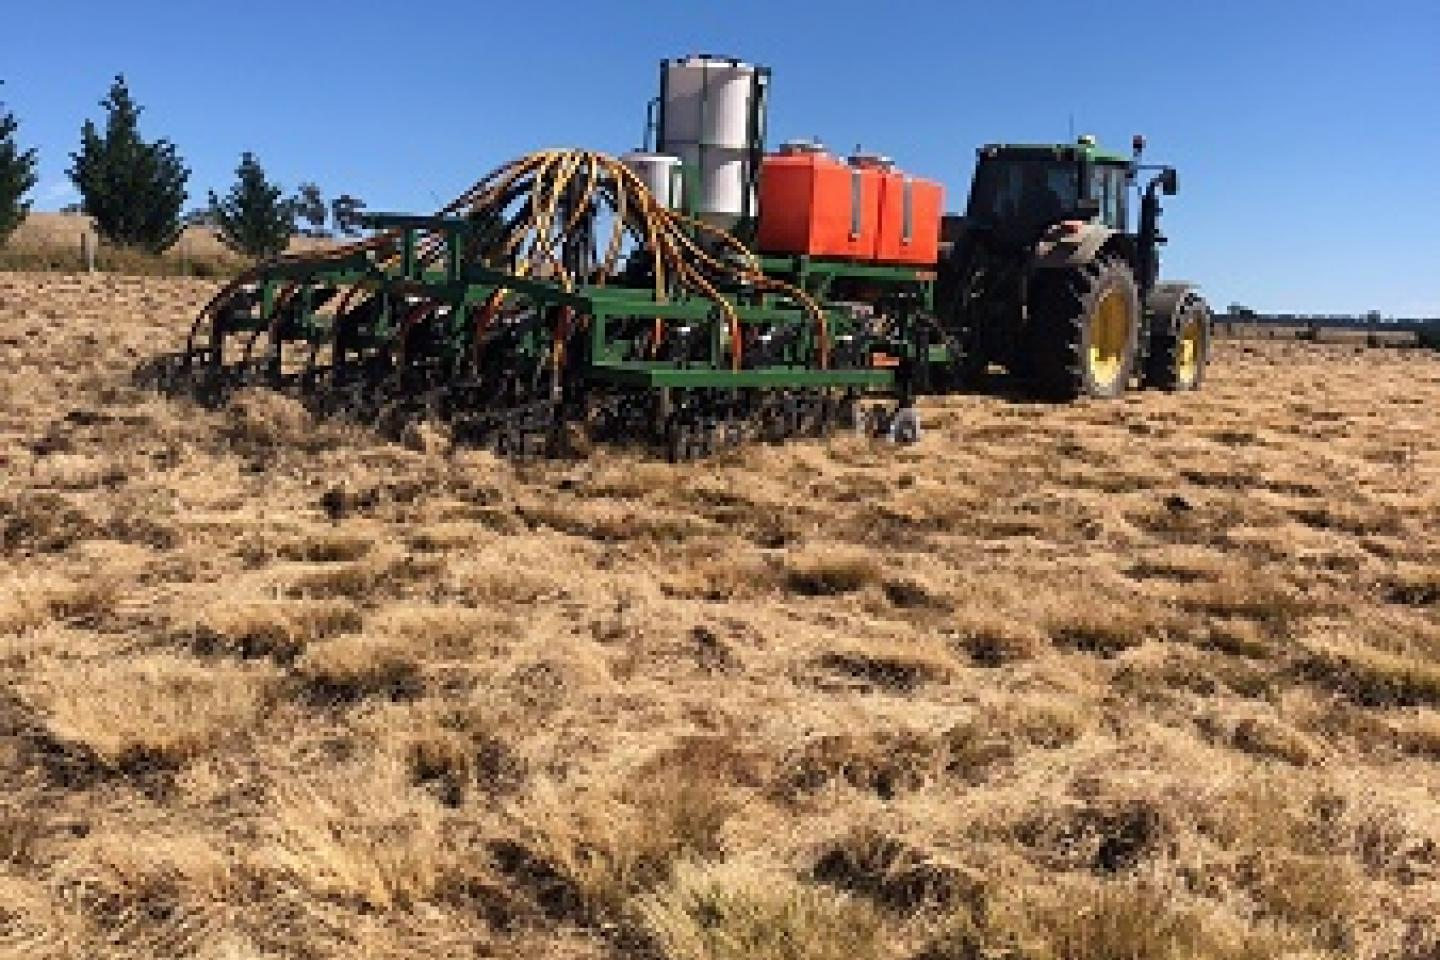 A specially-designed Ausplow DBS precision planter being used in New South Wales. The DBS is a Clayton's version of deep ripping and a defacto Keyline system, encouraging rain to stay where it falls.